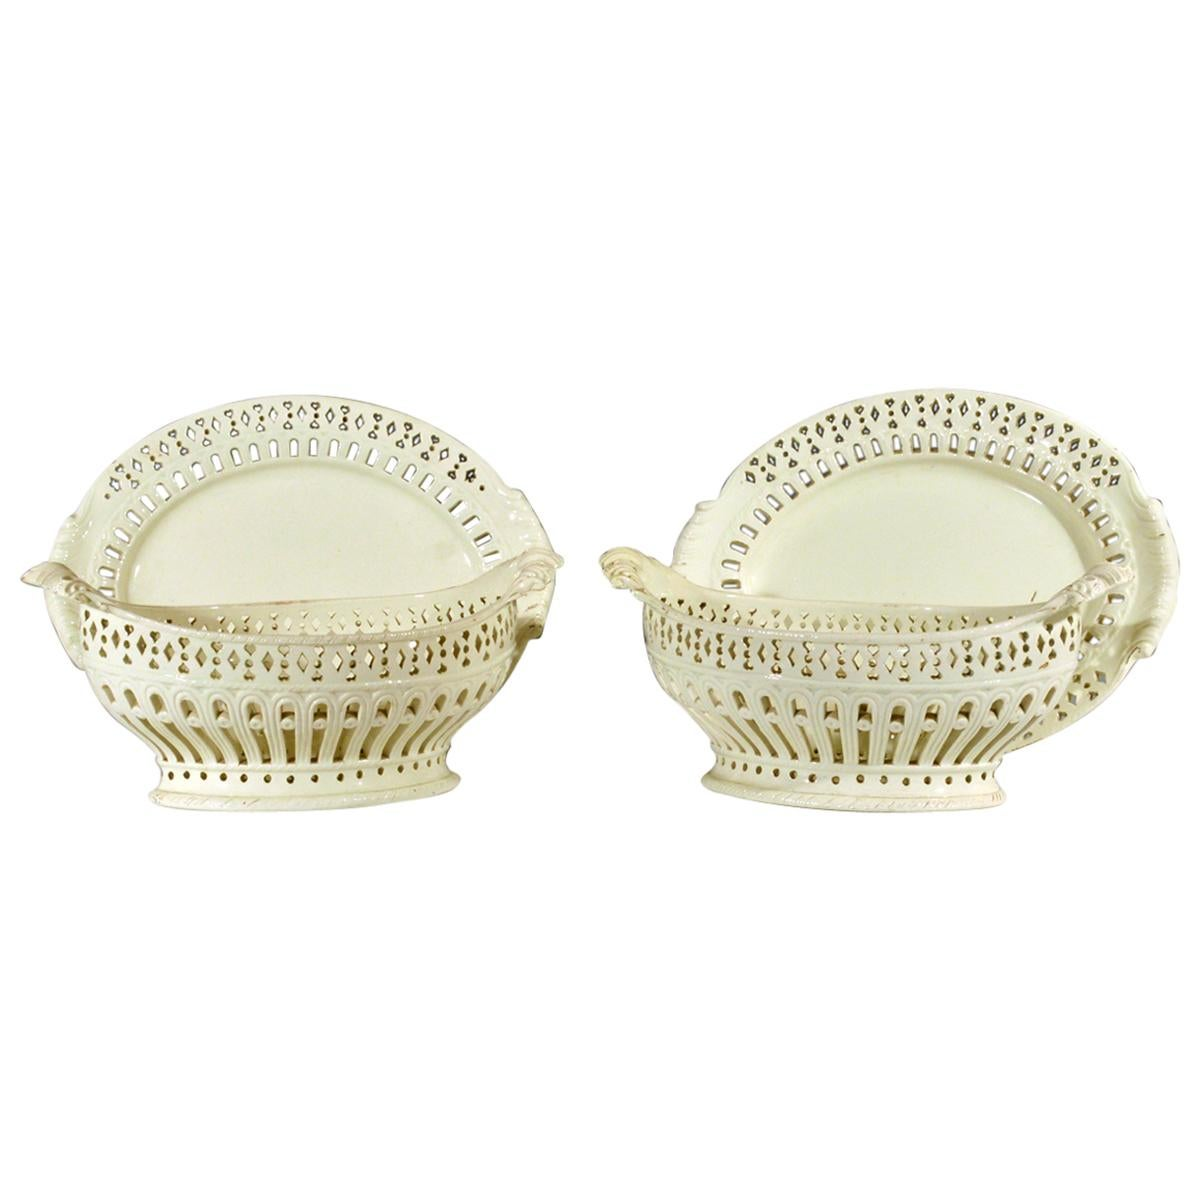 Pair of English Plain Creamware Openwork Baskets and Stands, circa 1780s-1990s